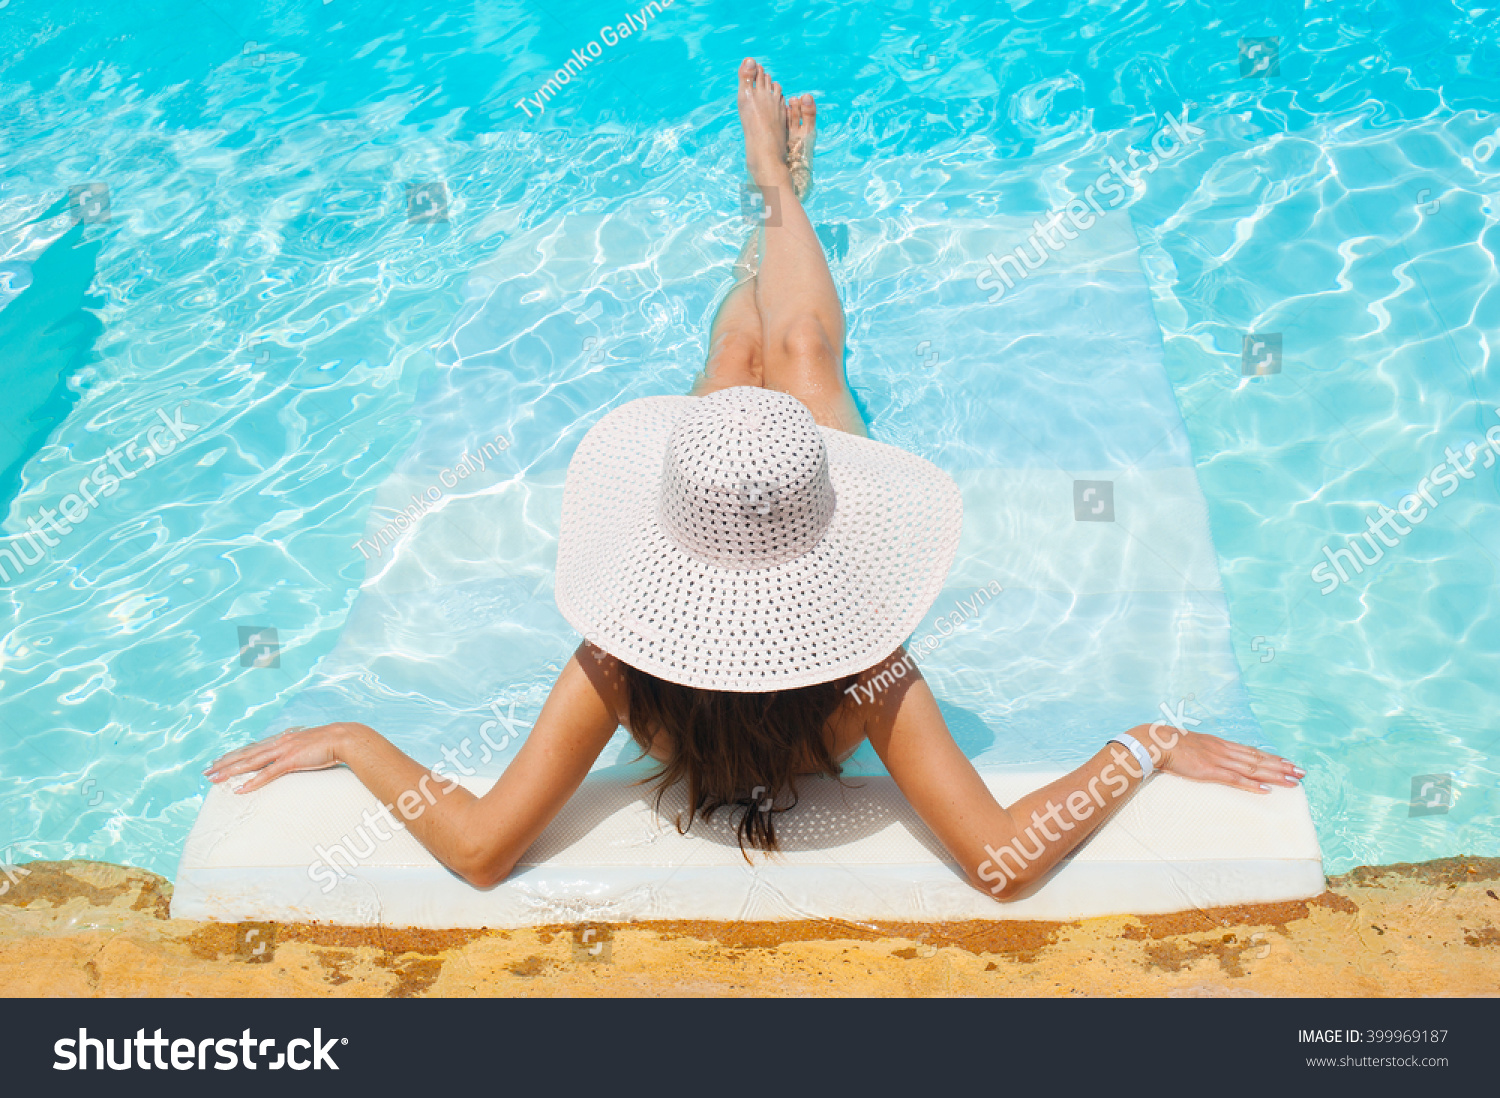 beautiful woman white hat and bikini lying in a pool